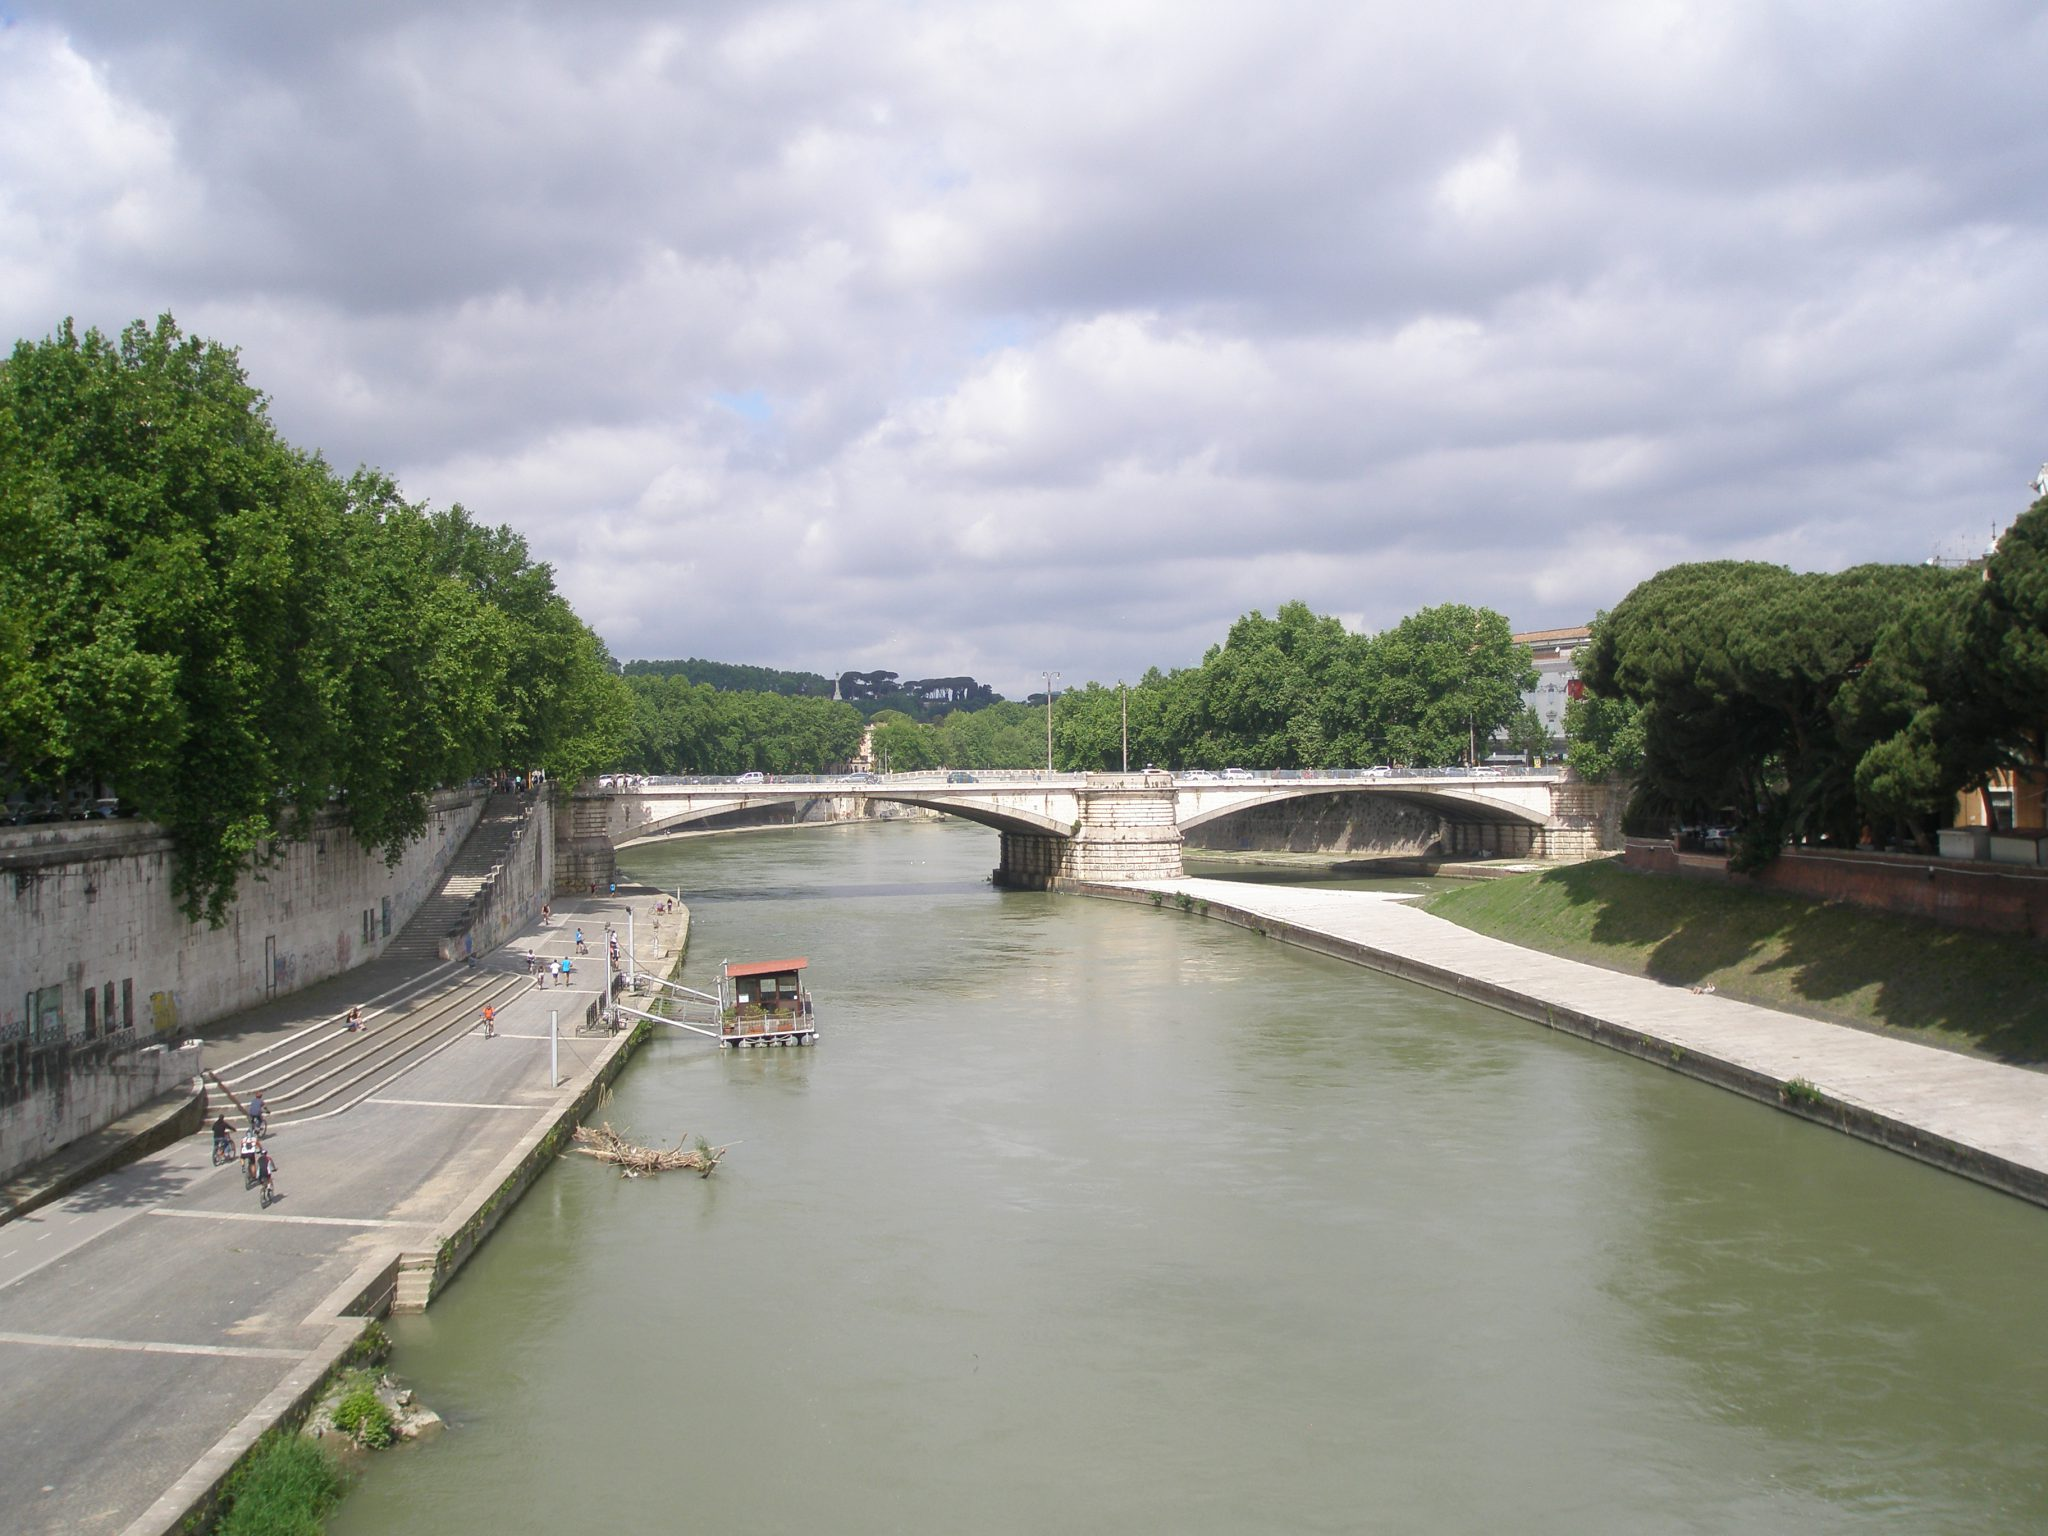 A view of Ponte Garibaldi, which spans the narrow, western end of Isola Tiberina. I took this photo while standing on Ponte Cestio, the footbridge which bisects Tiber Island.